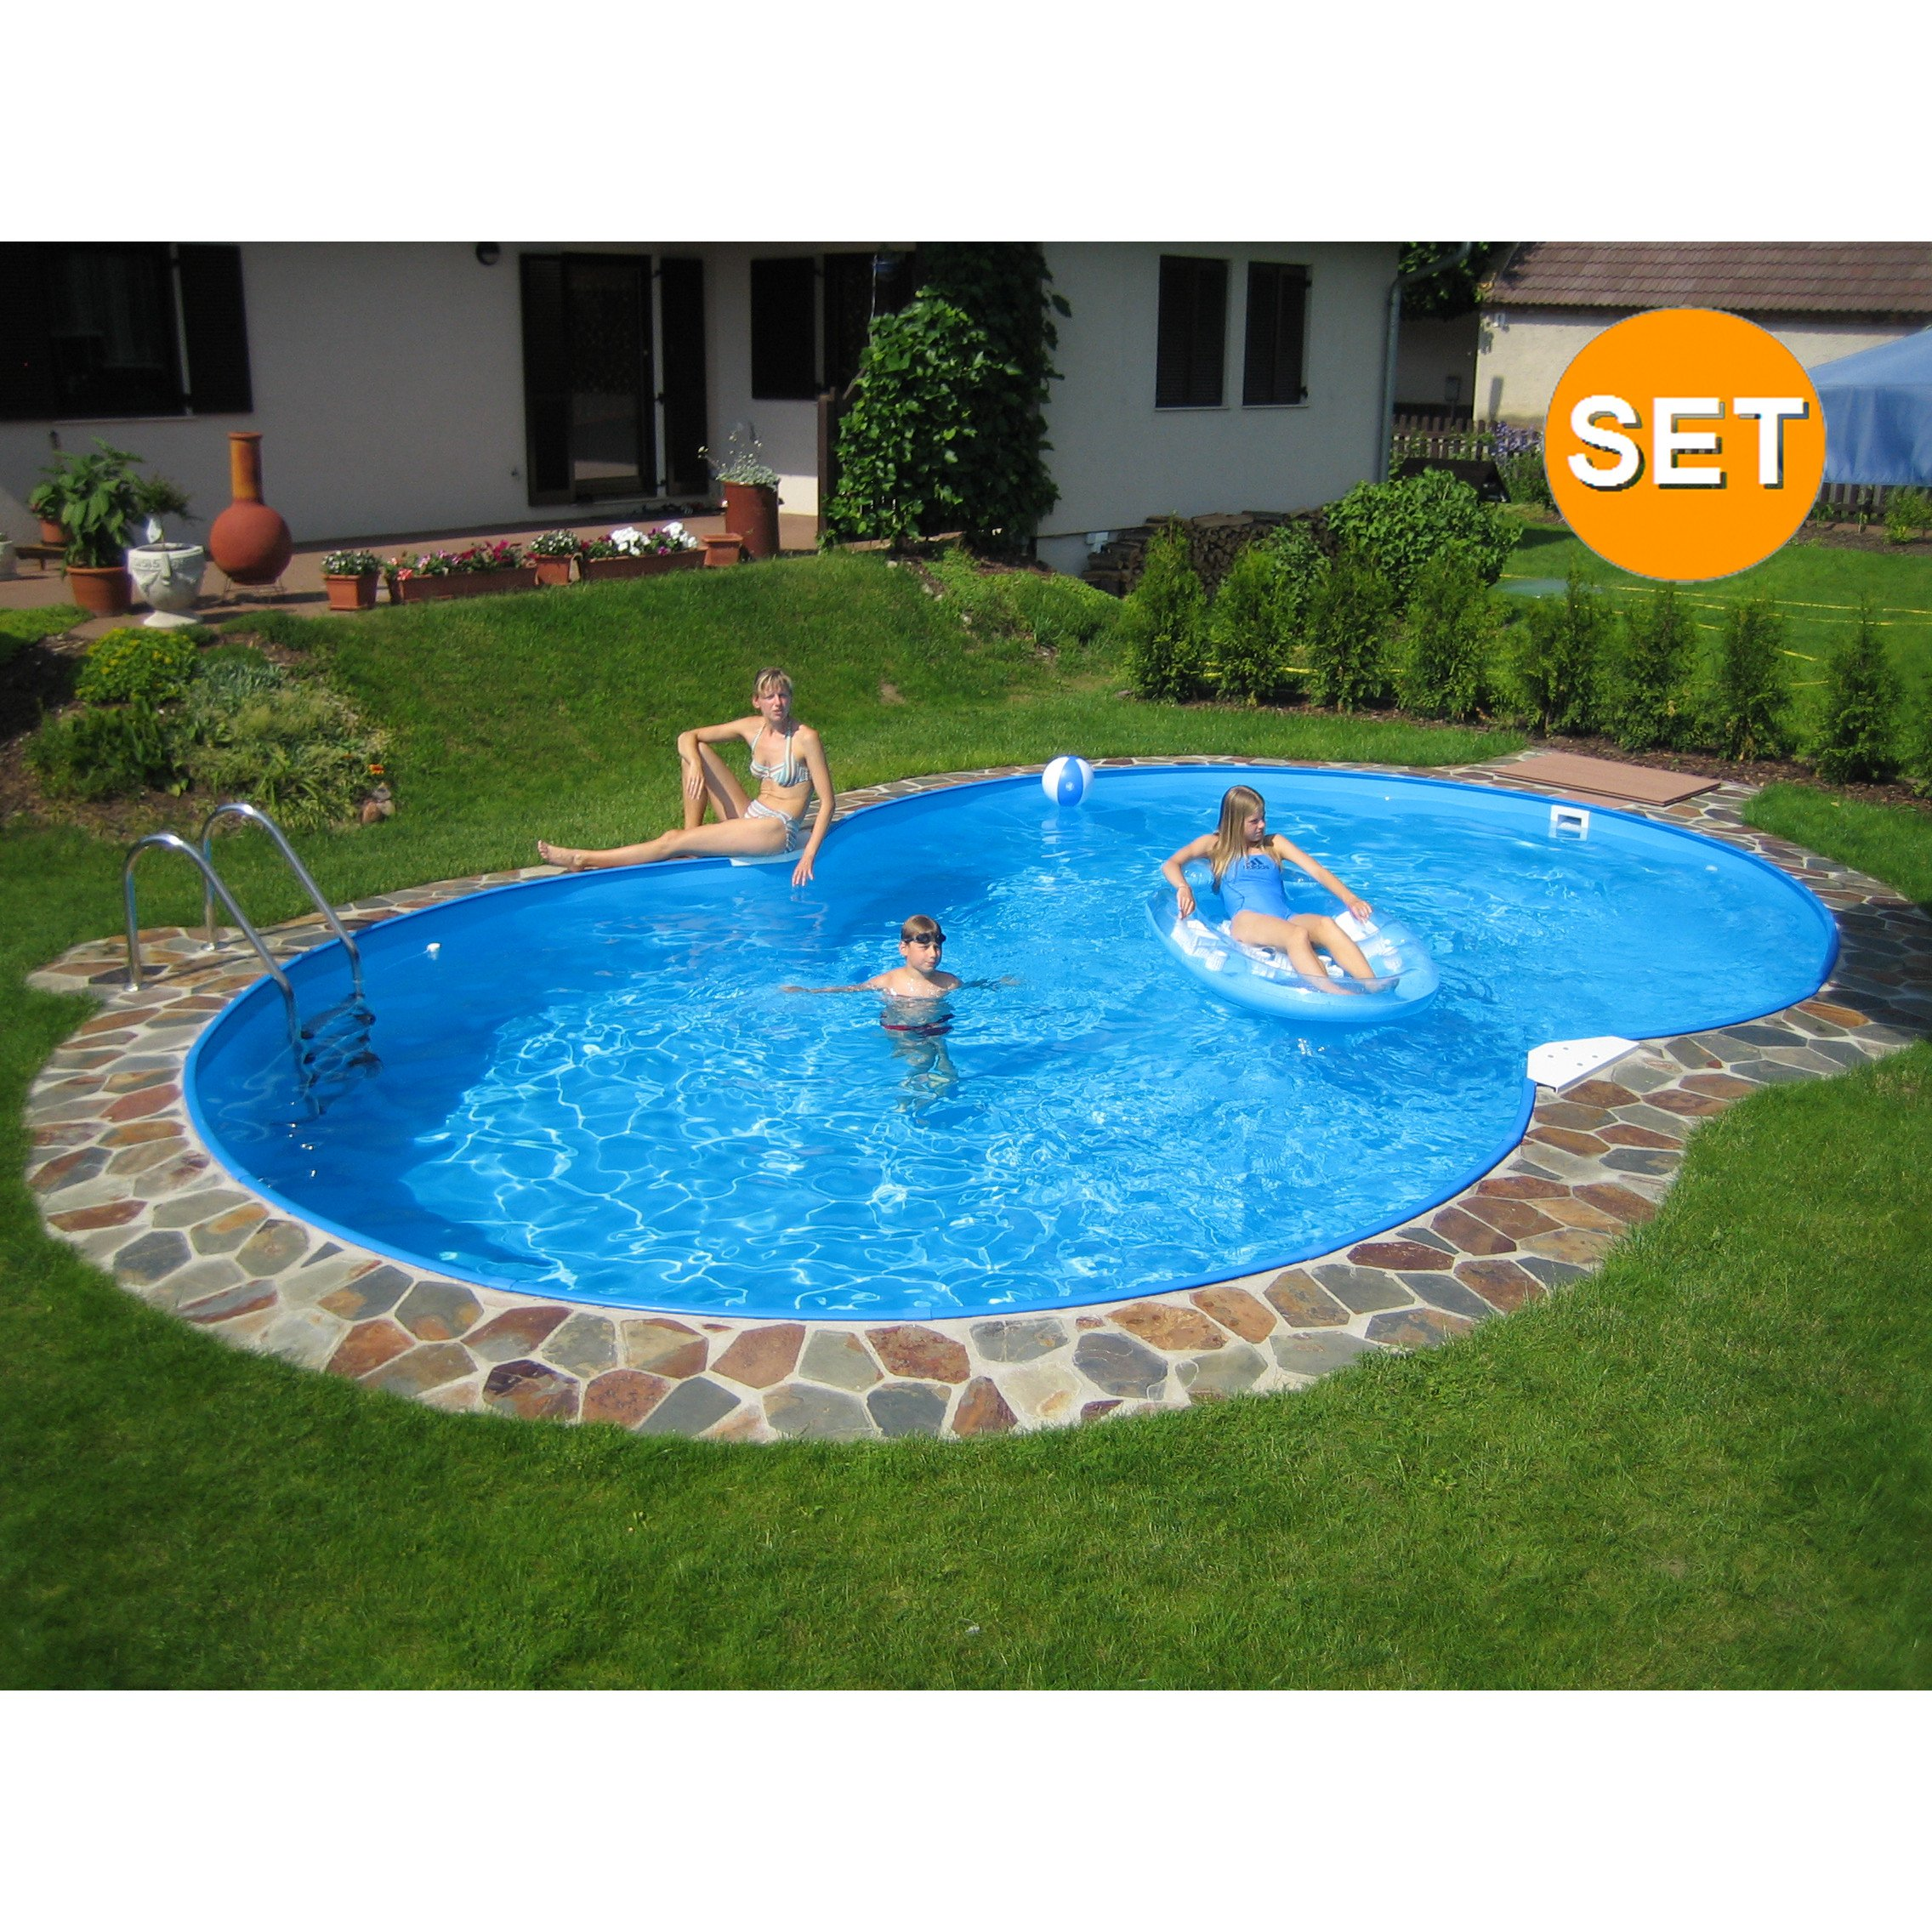 Pool Bodensauger Manuell Family Achtform Pool 855 X 500 X 150 Cm Komplettset